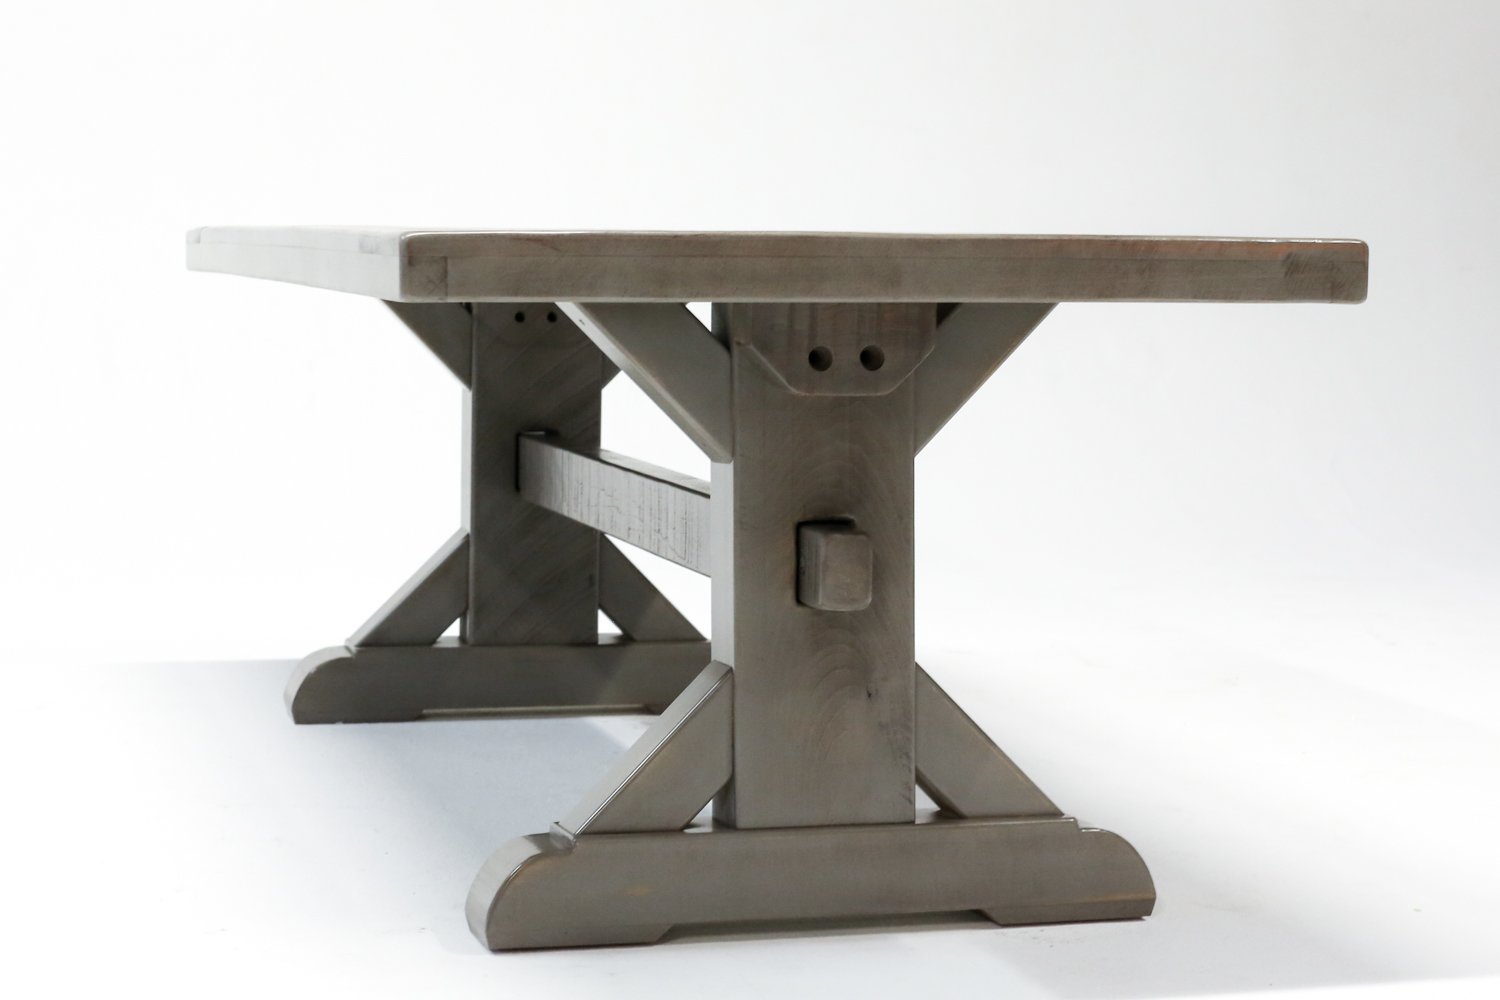 Rustic X Style Trestle Farm Table Atlanta GA Denver CO